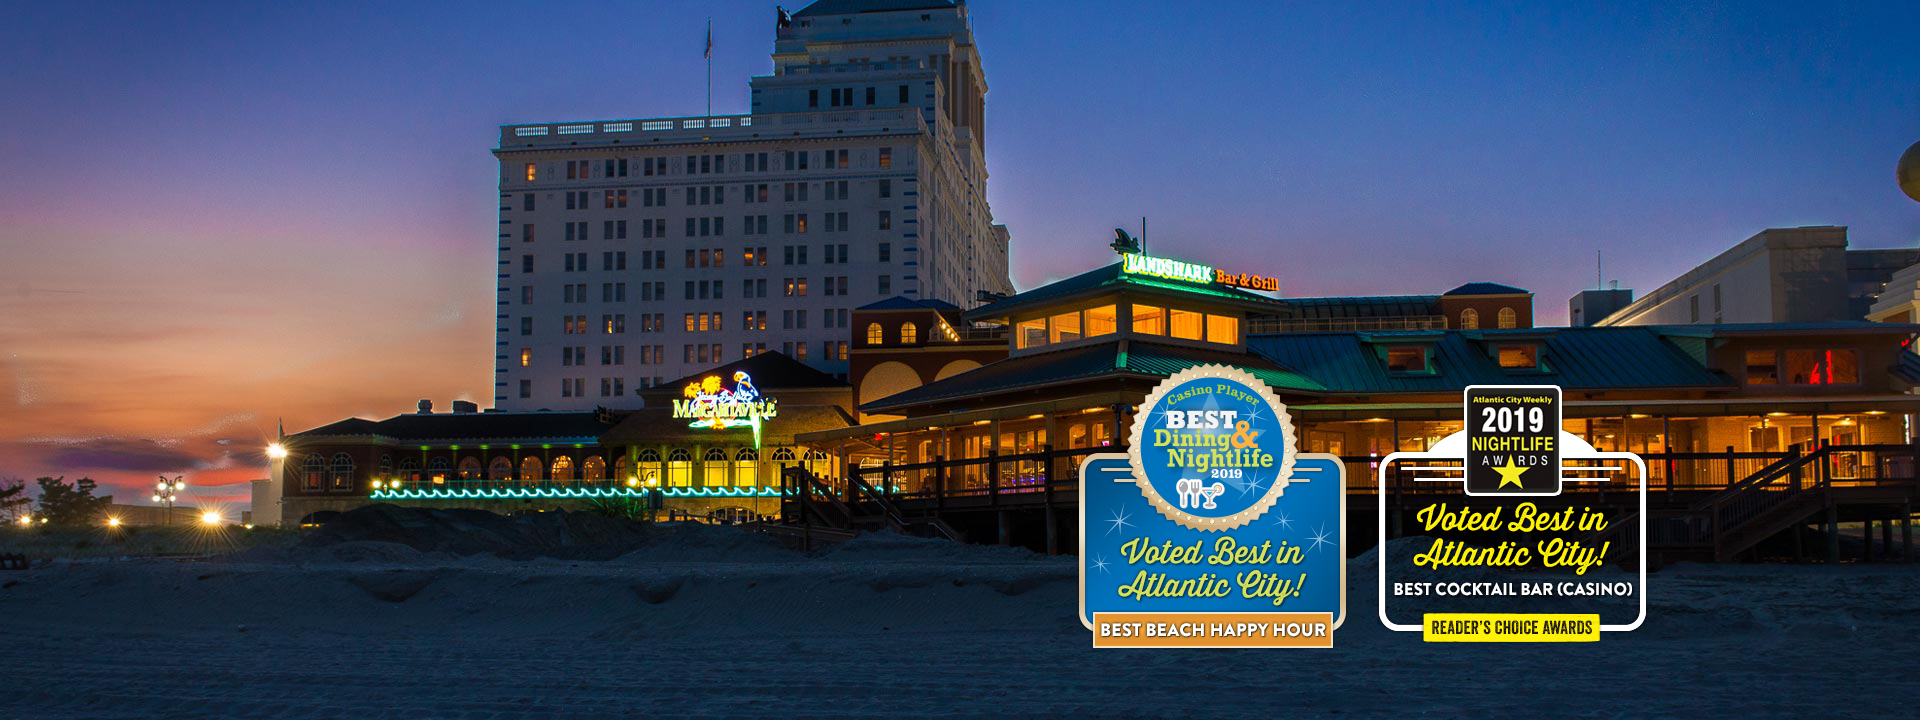 Restaurant building and text: Voted best in Atlantic city! Best cocktail bar (casino). Reader's choice awards